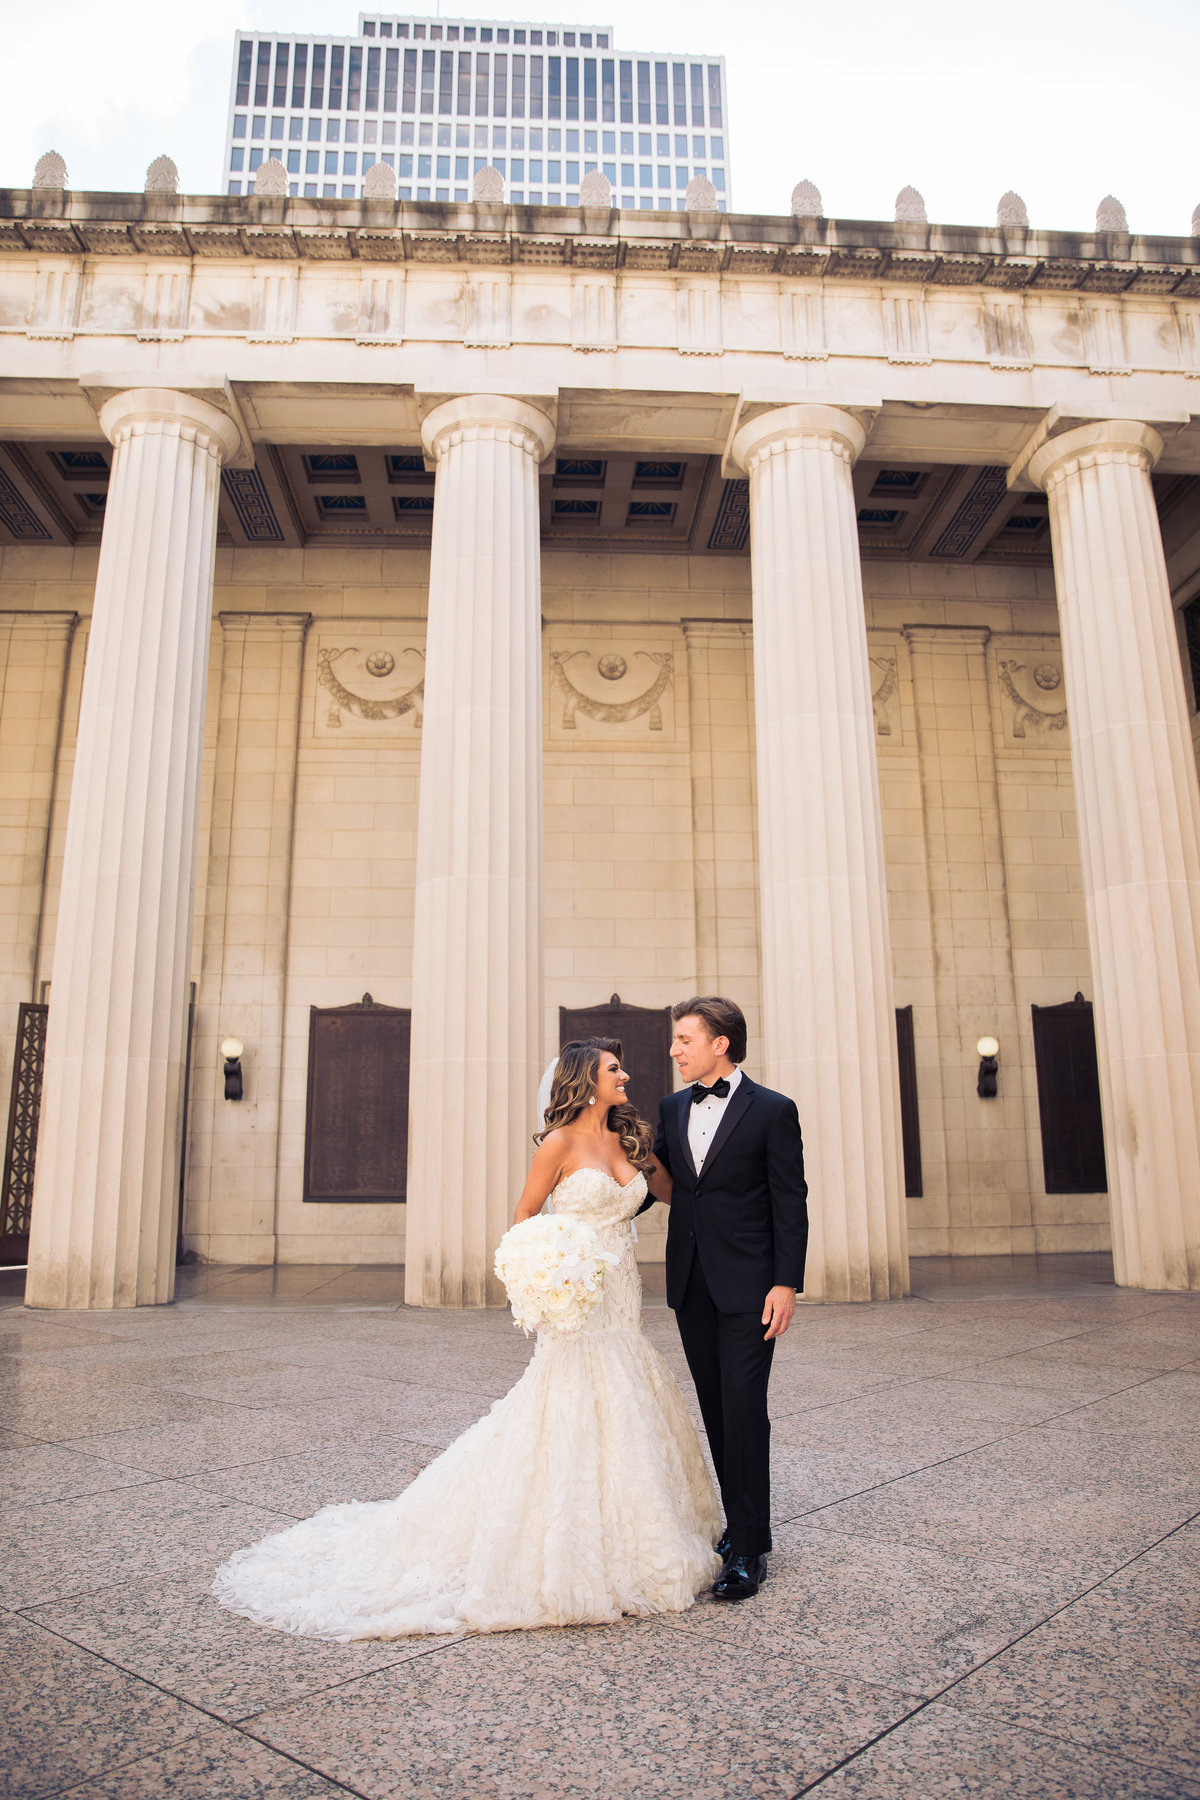 Bride and Groom in front of the columns at War Memorial.